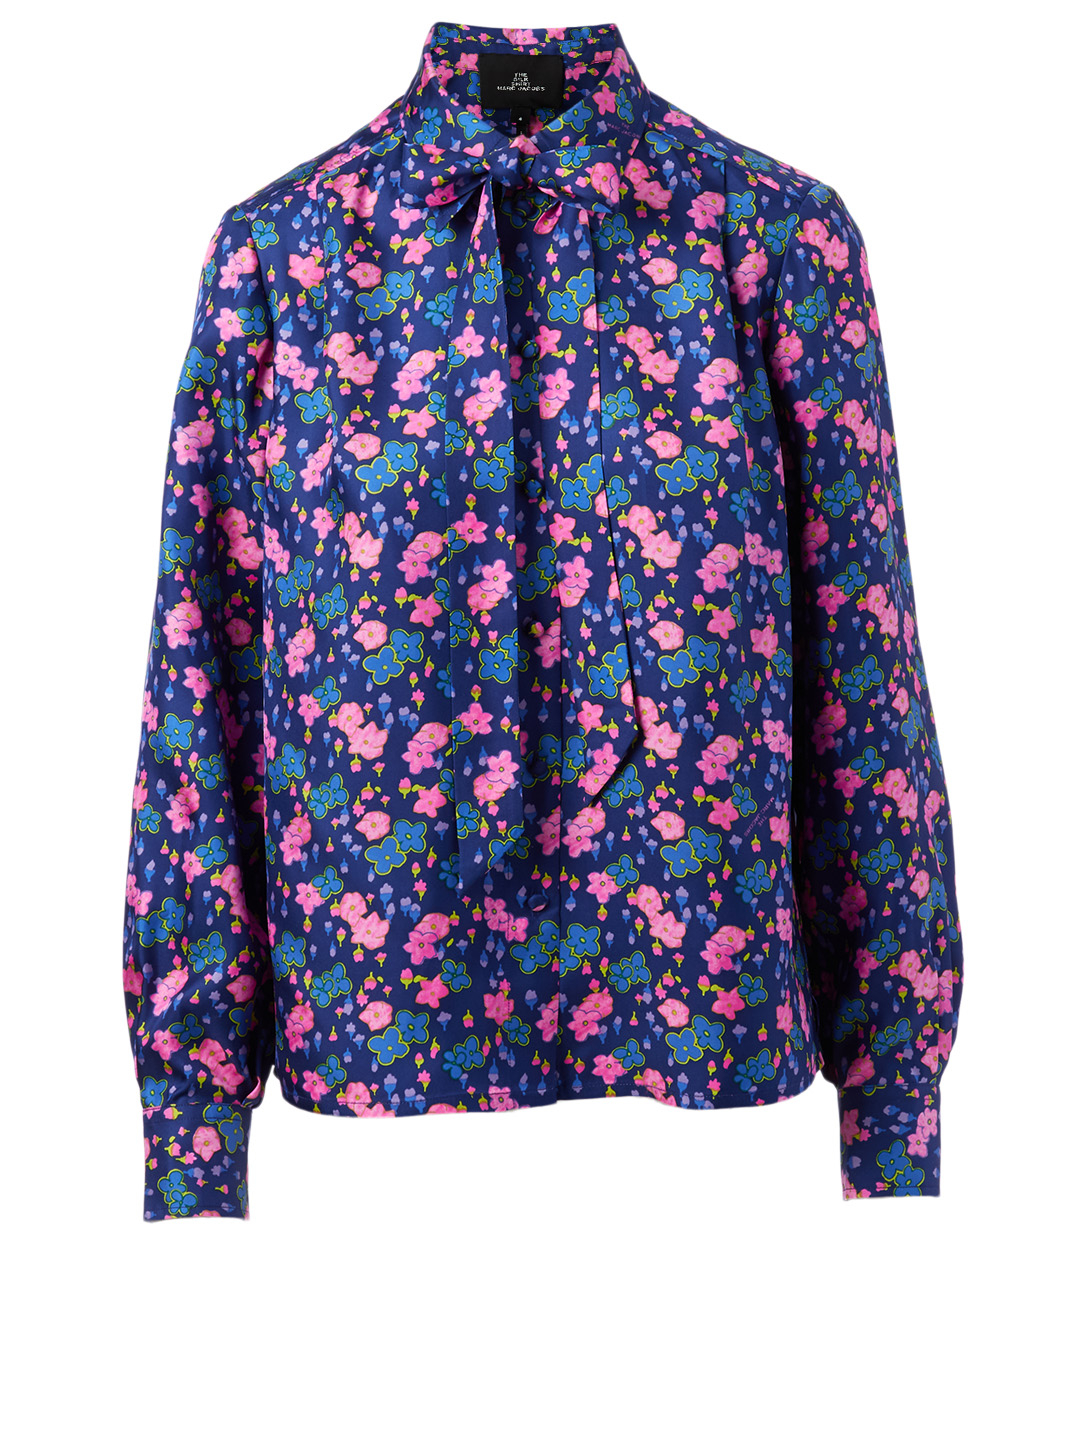 THE MARC JACOBS Silk Shirt In Floral Print Women's Blue